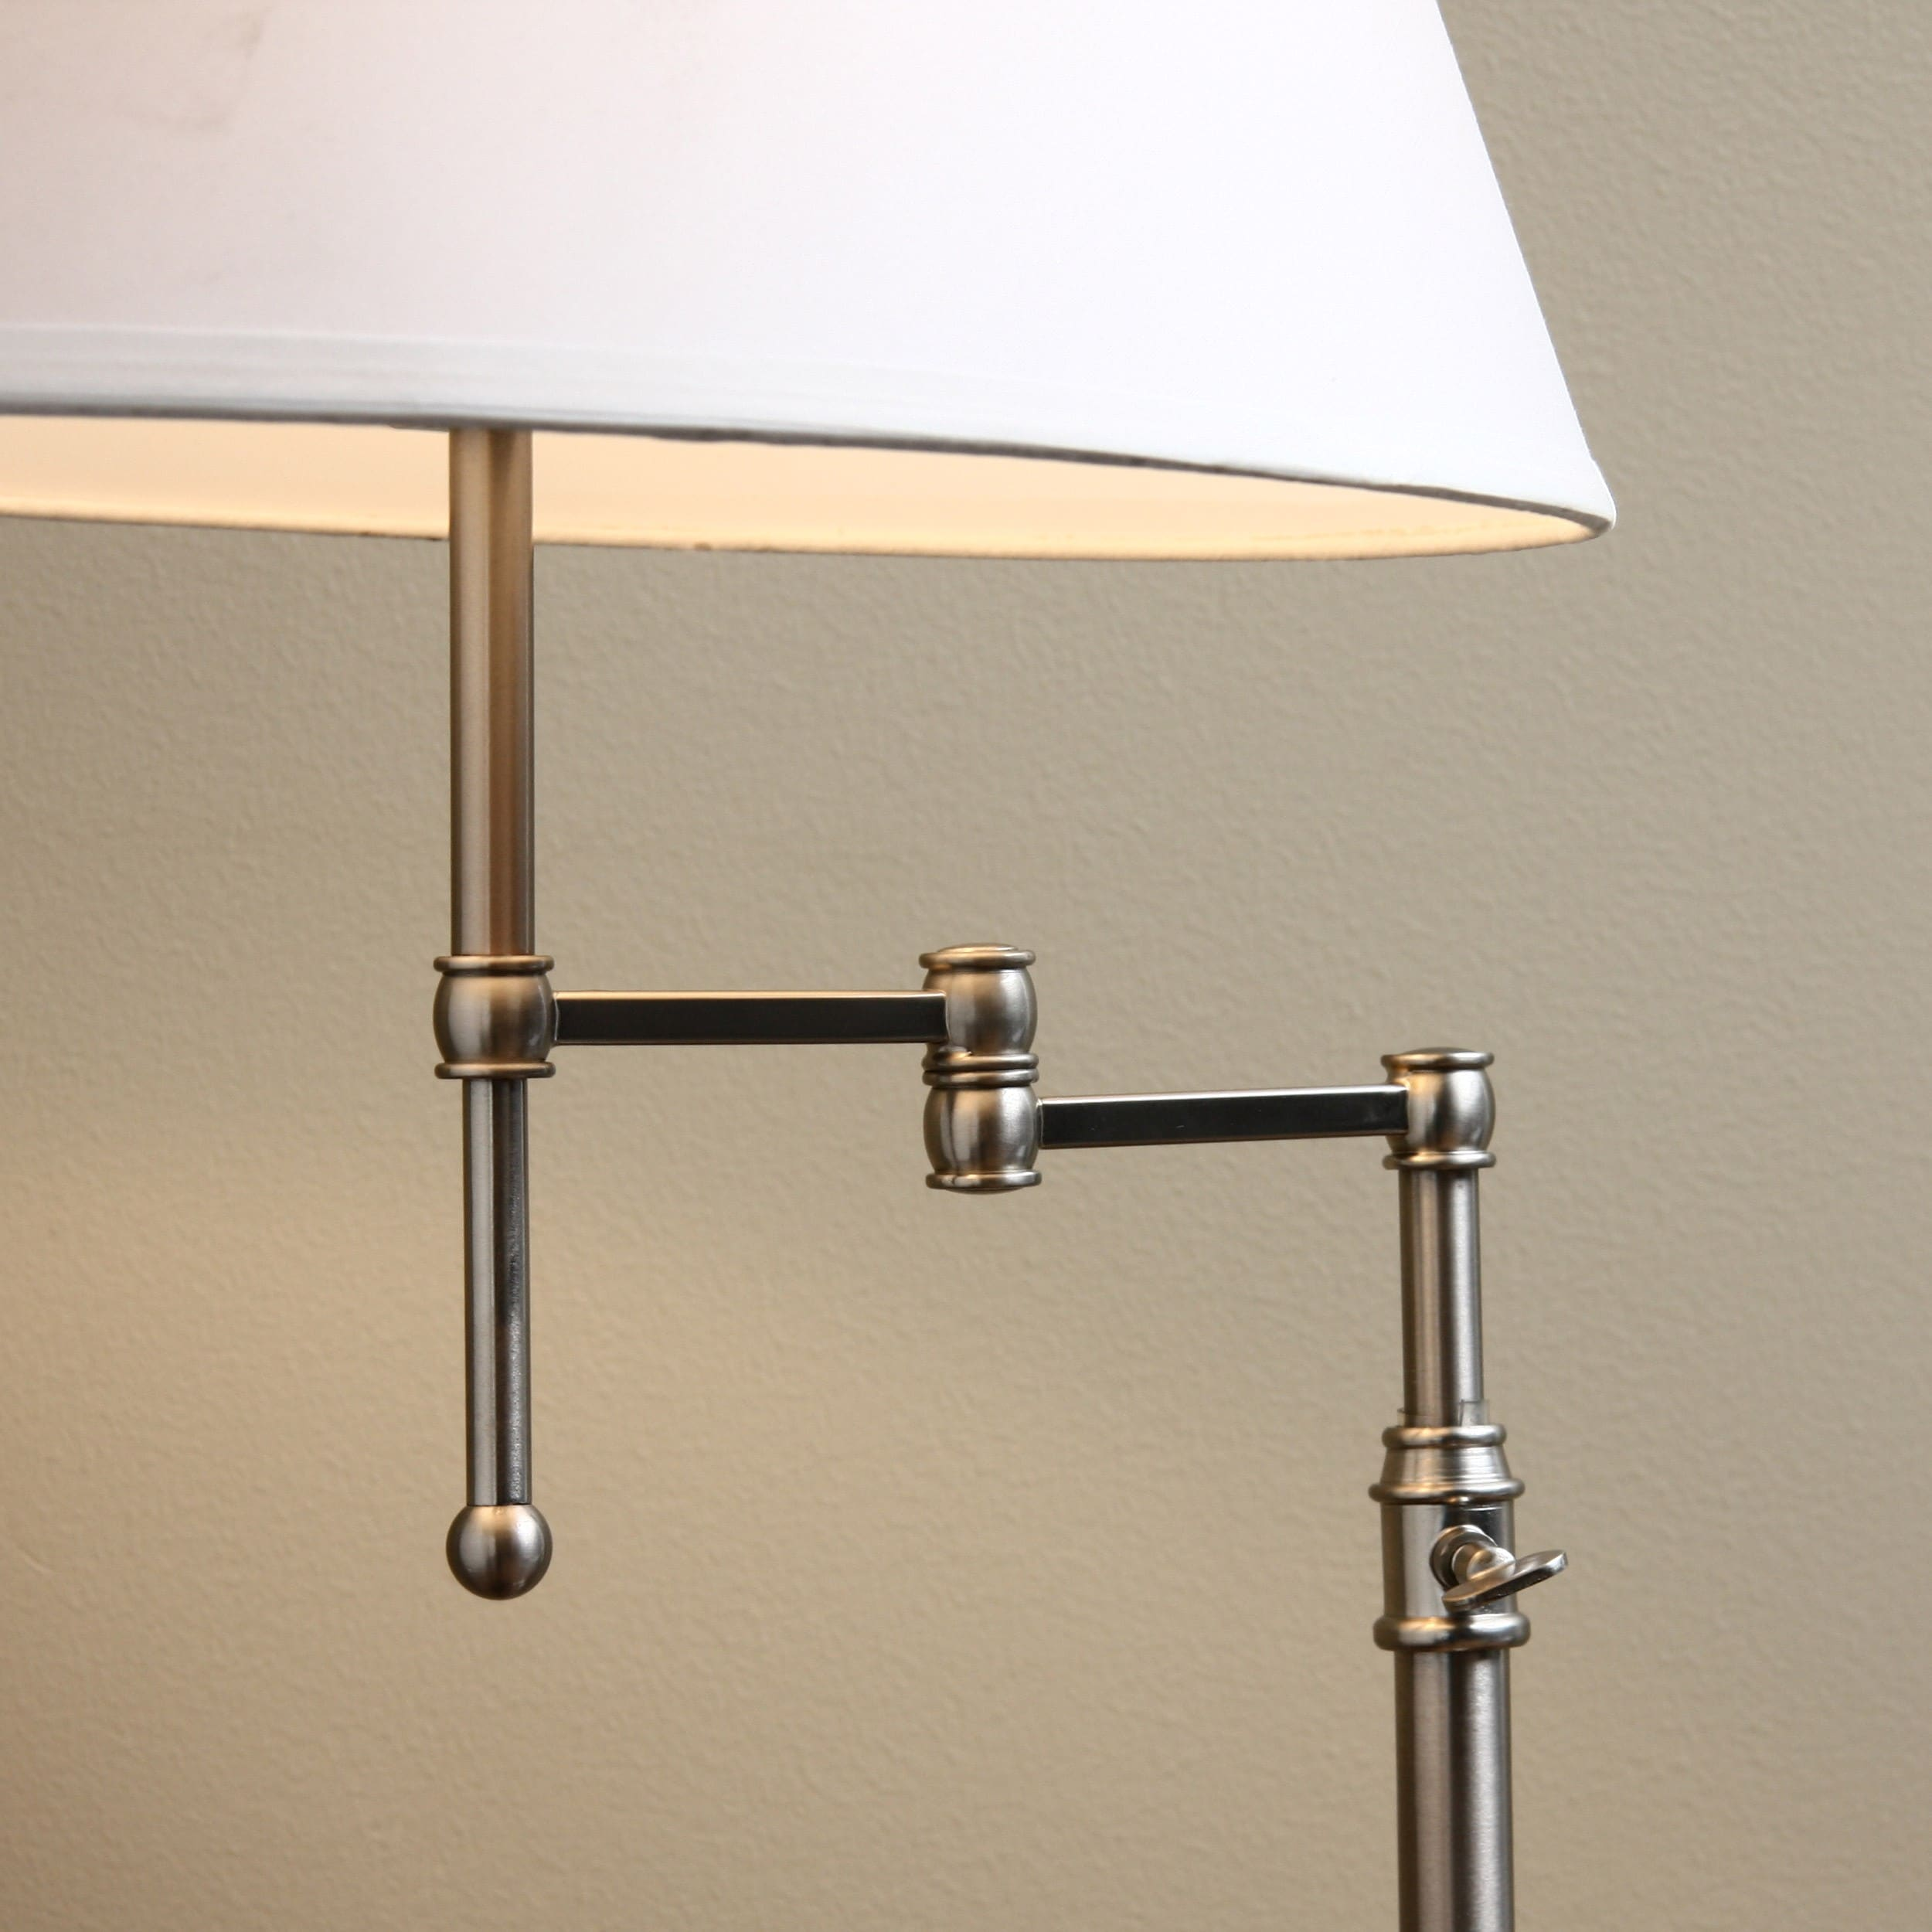 Shop Brushed Nickel Swing Arm Table Lamp Free Shipping Today